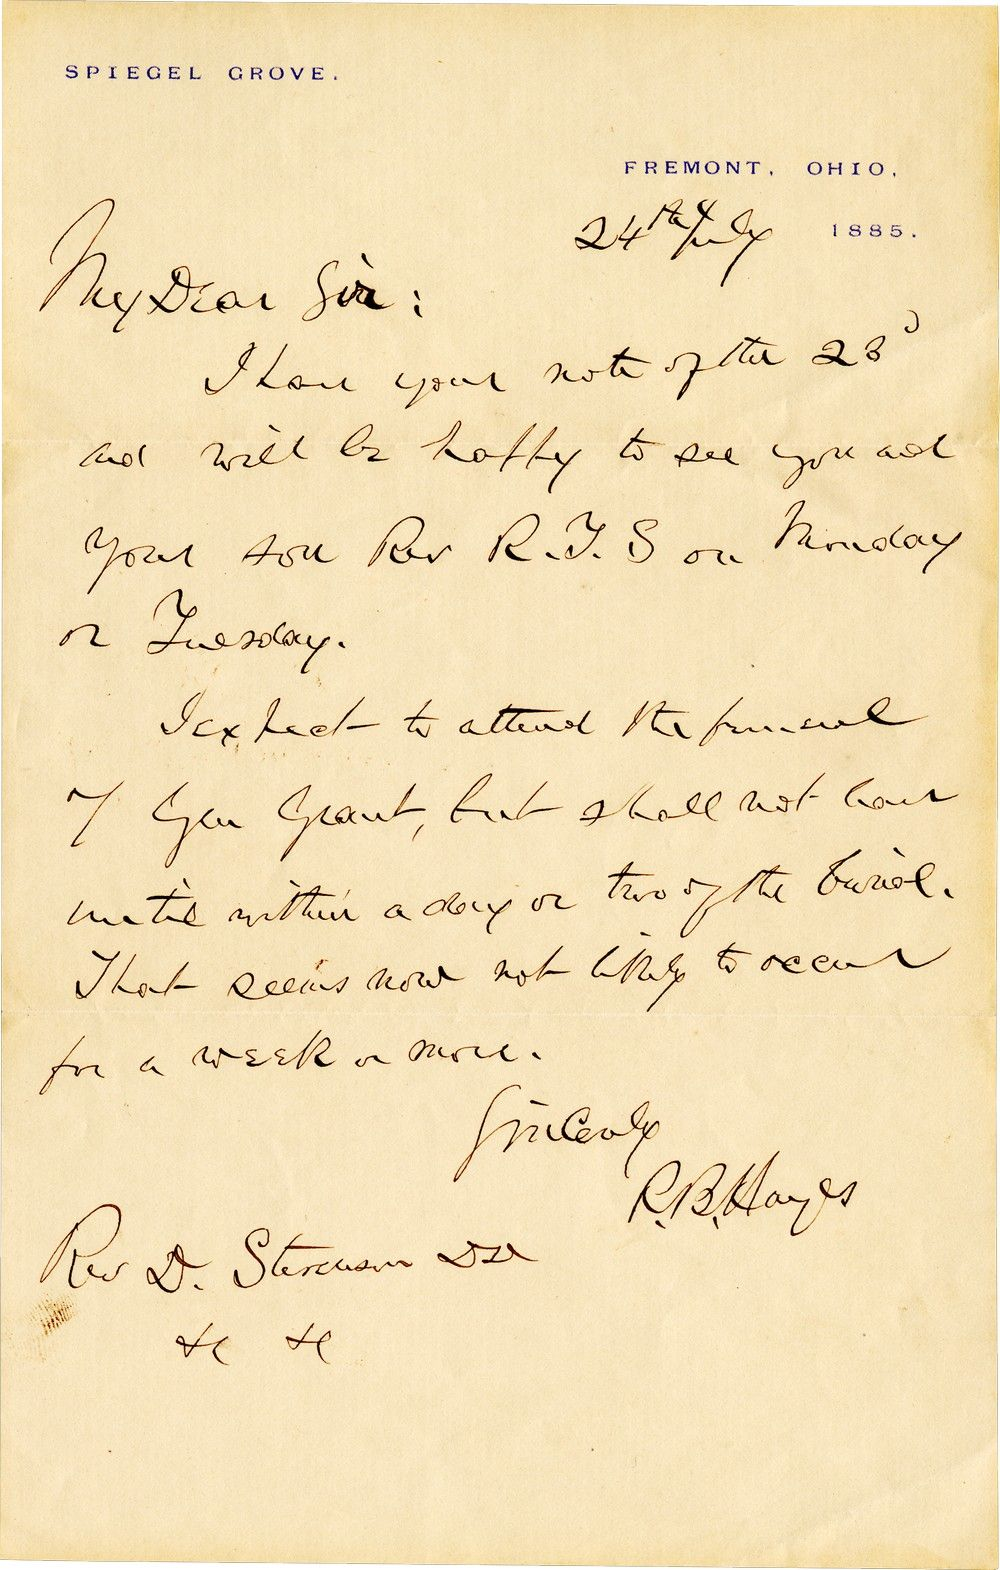 Rutherford B. Hayes Announces He Will Attend Ulysses S. Grant's Funeral